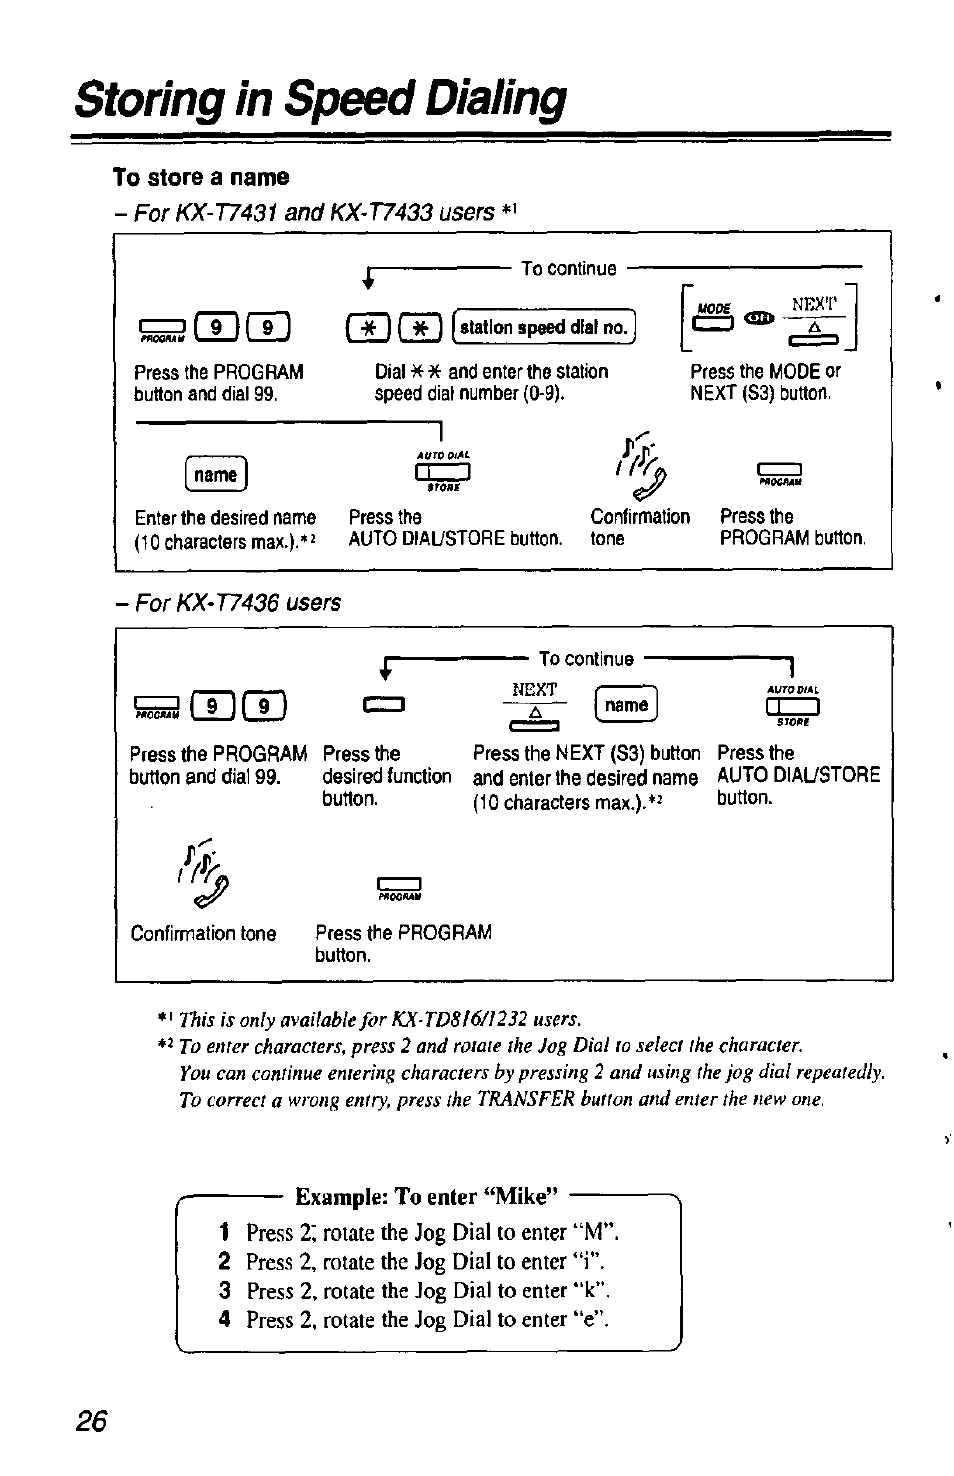 to store a name storing in speed dialing example to enter u201cmike rh manualsdir com panasonic kx-t7433 instruction manual panasonic kx-t7433 instruction manual